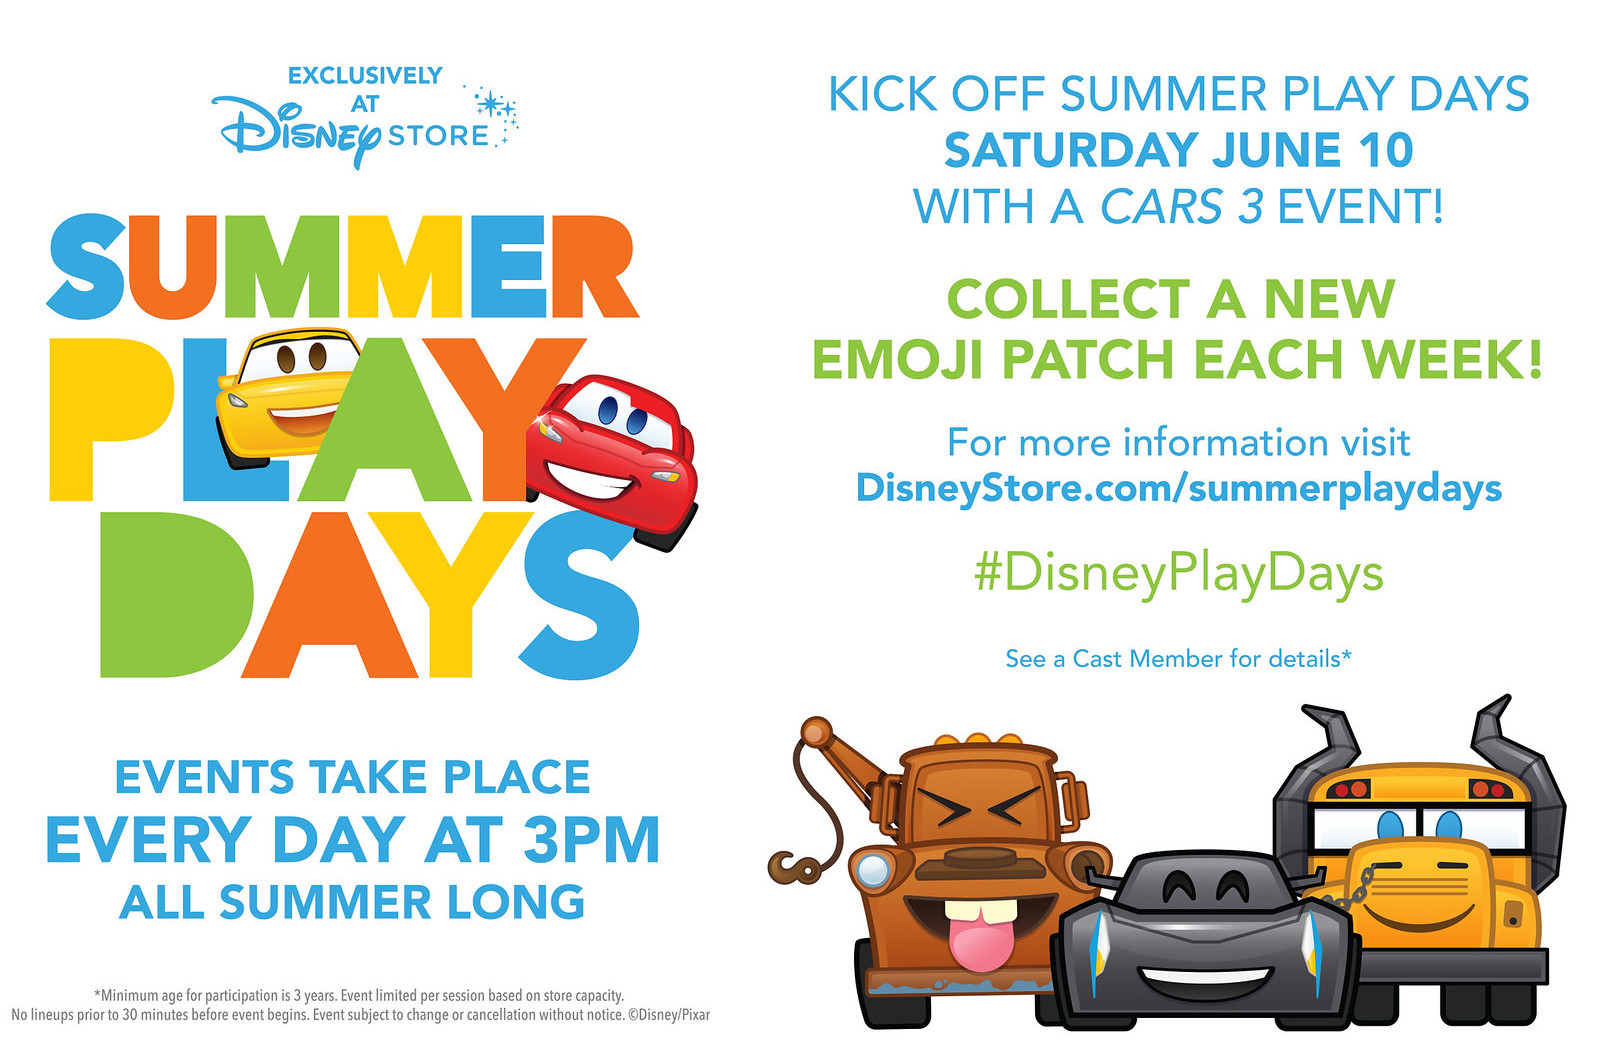 Summer Play Days At The Disney Store Cars 3 Events Emoji Patches